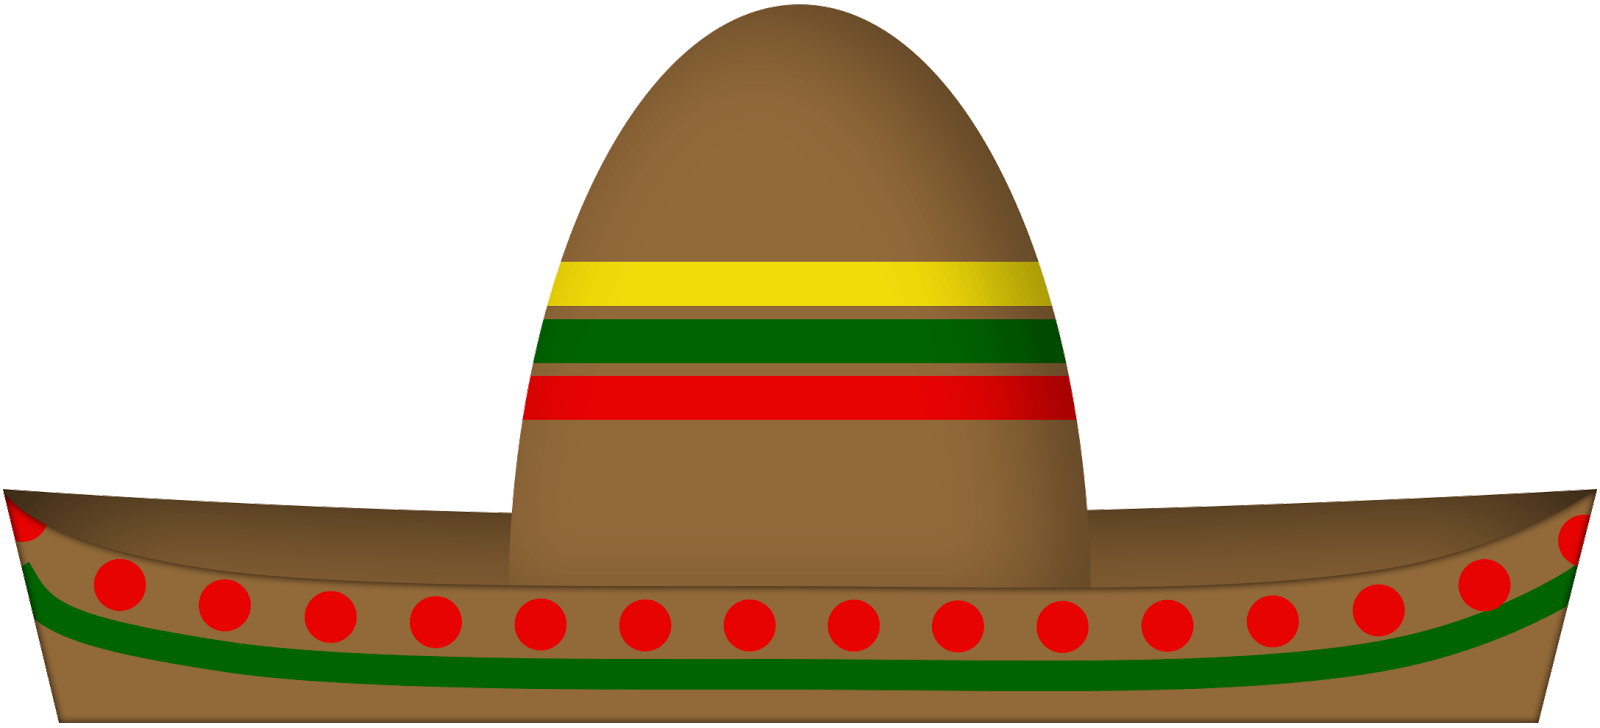 Sombrero clipart png graphic transparent stock Free Sombrero, Download Free Clip Art, Free Clip Art on ... graphic transparent stock